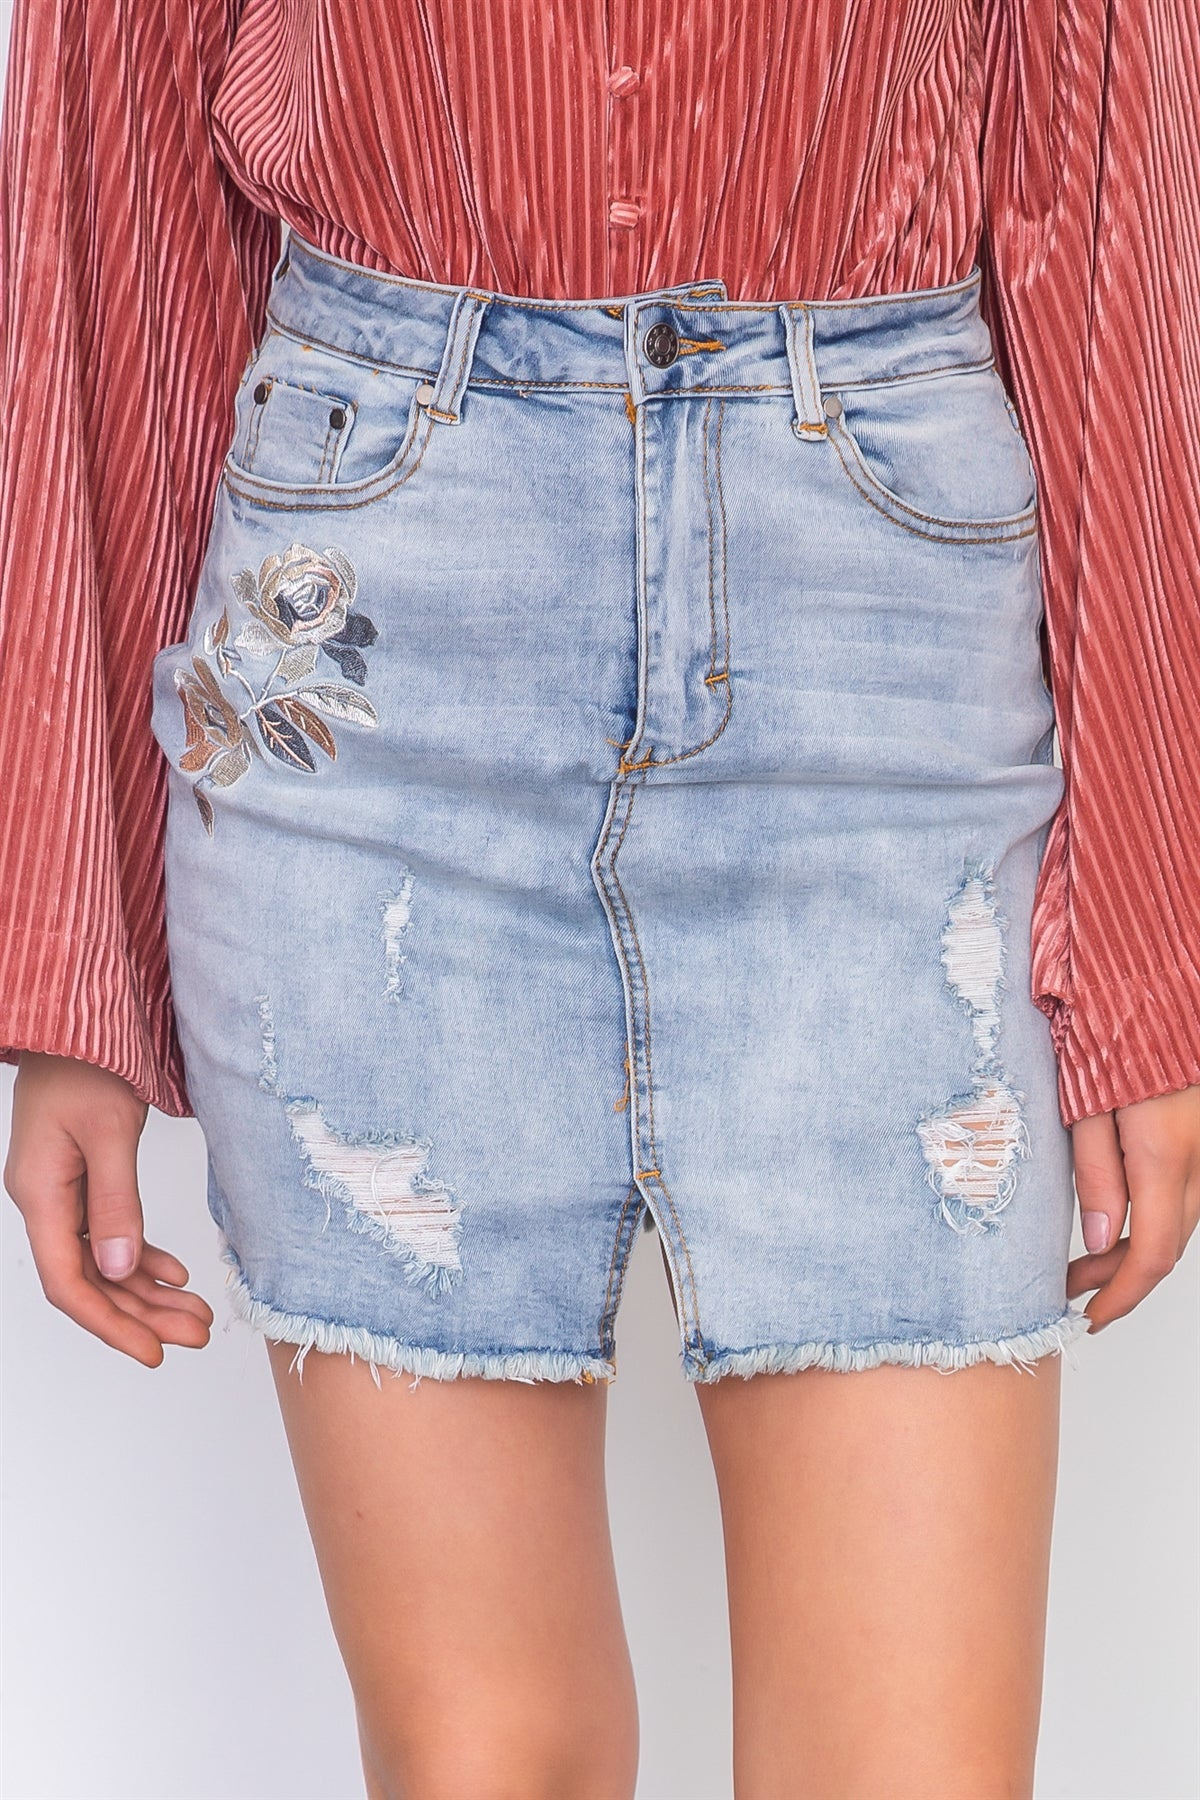 f13f8b04df Denim floral embroidered distressed mini skirt. Hover to zoom